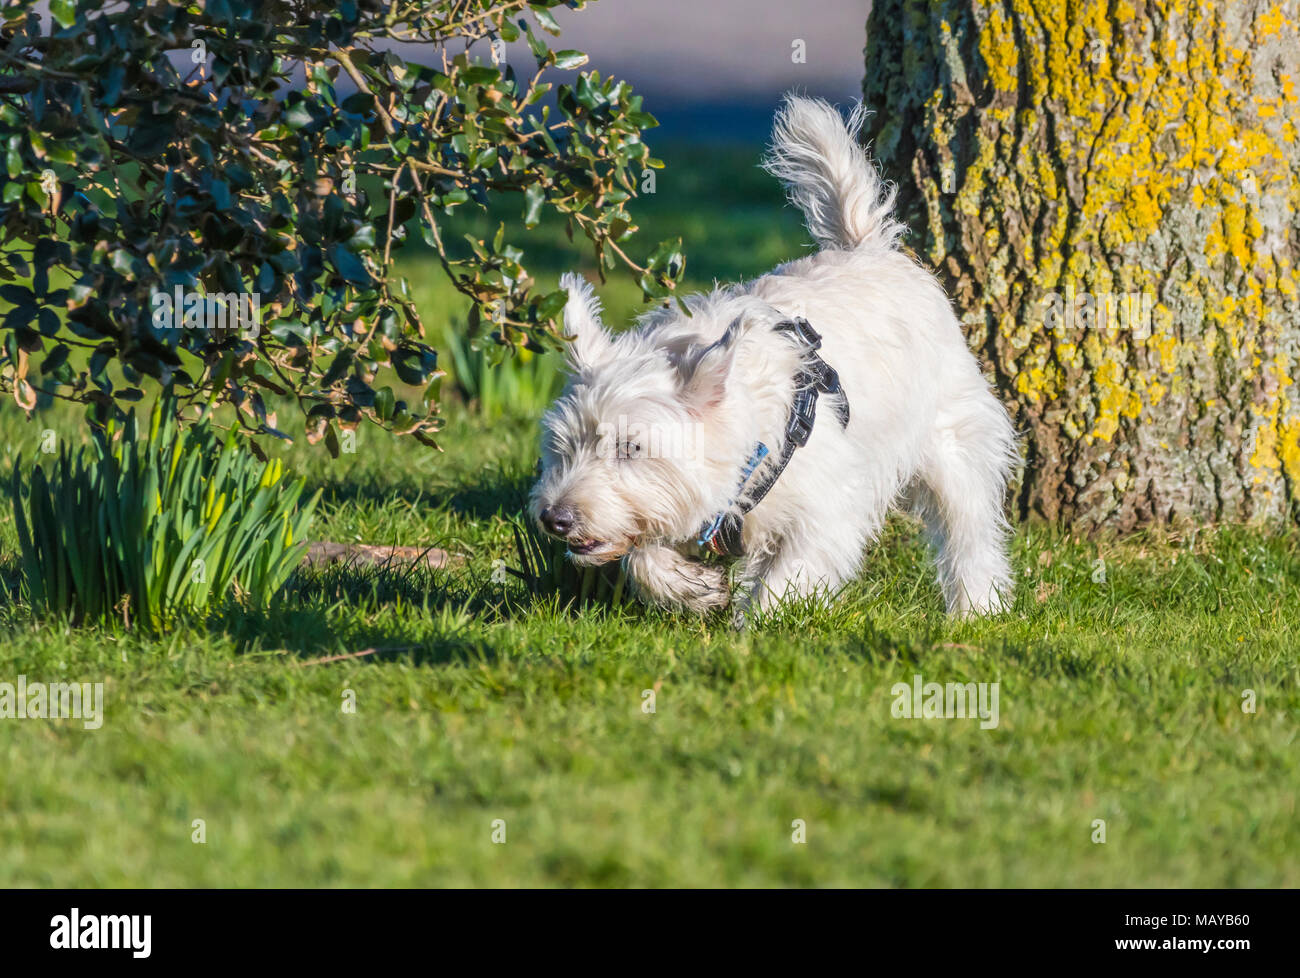 Cute Small White Dog In Park Stock Photos Cute Small White Dog In